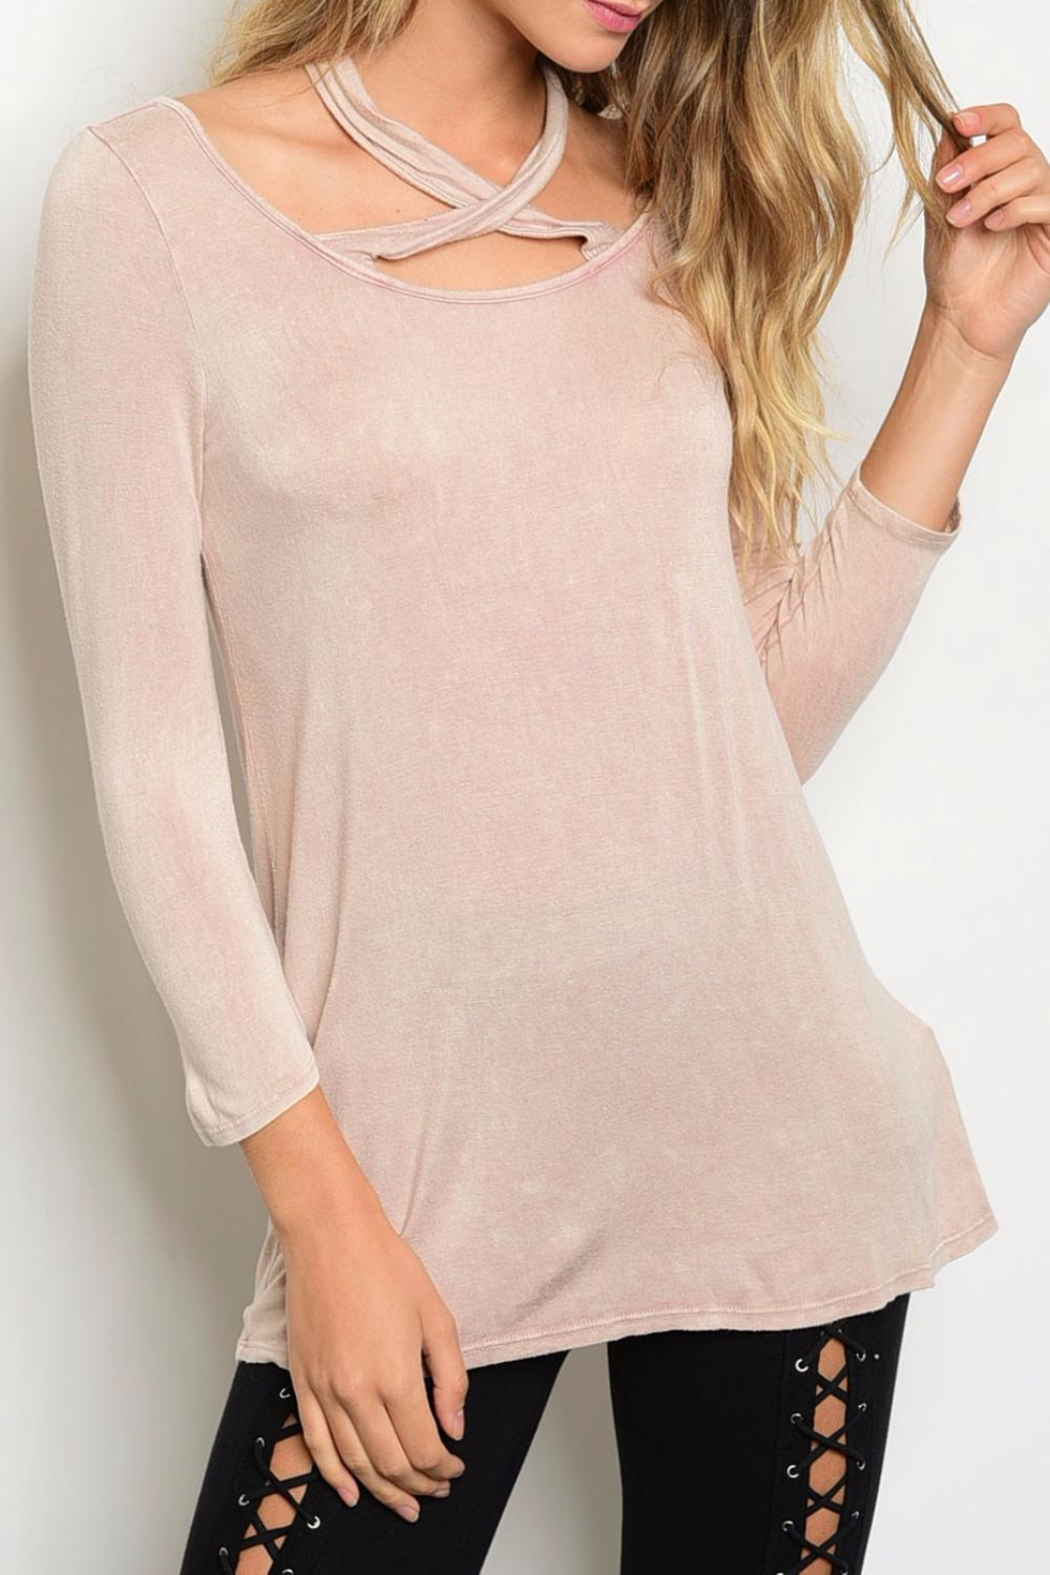 PRIMI Blush Crossed Top - Main Image